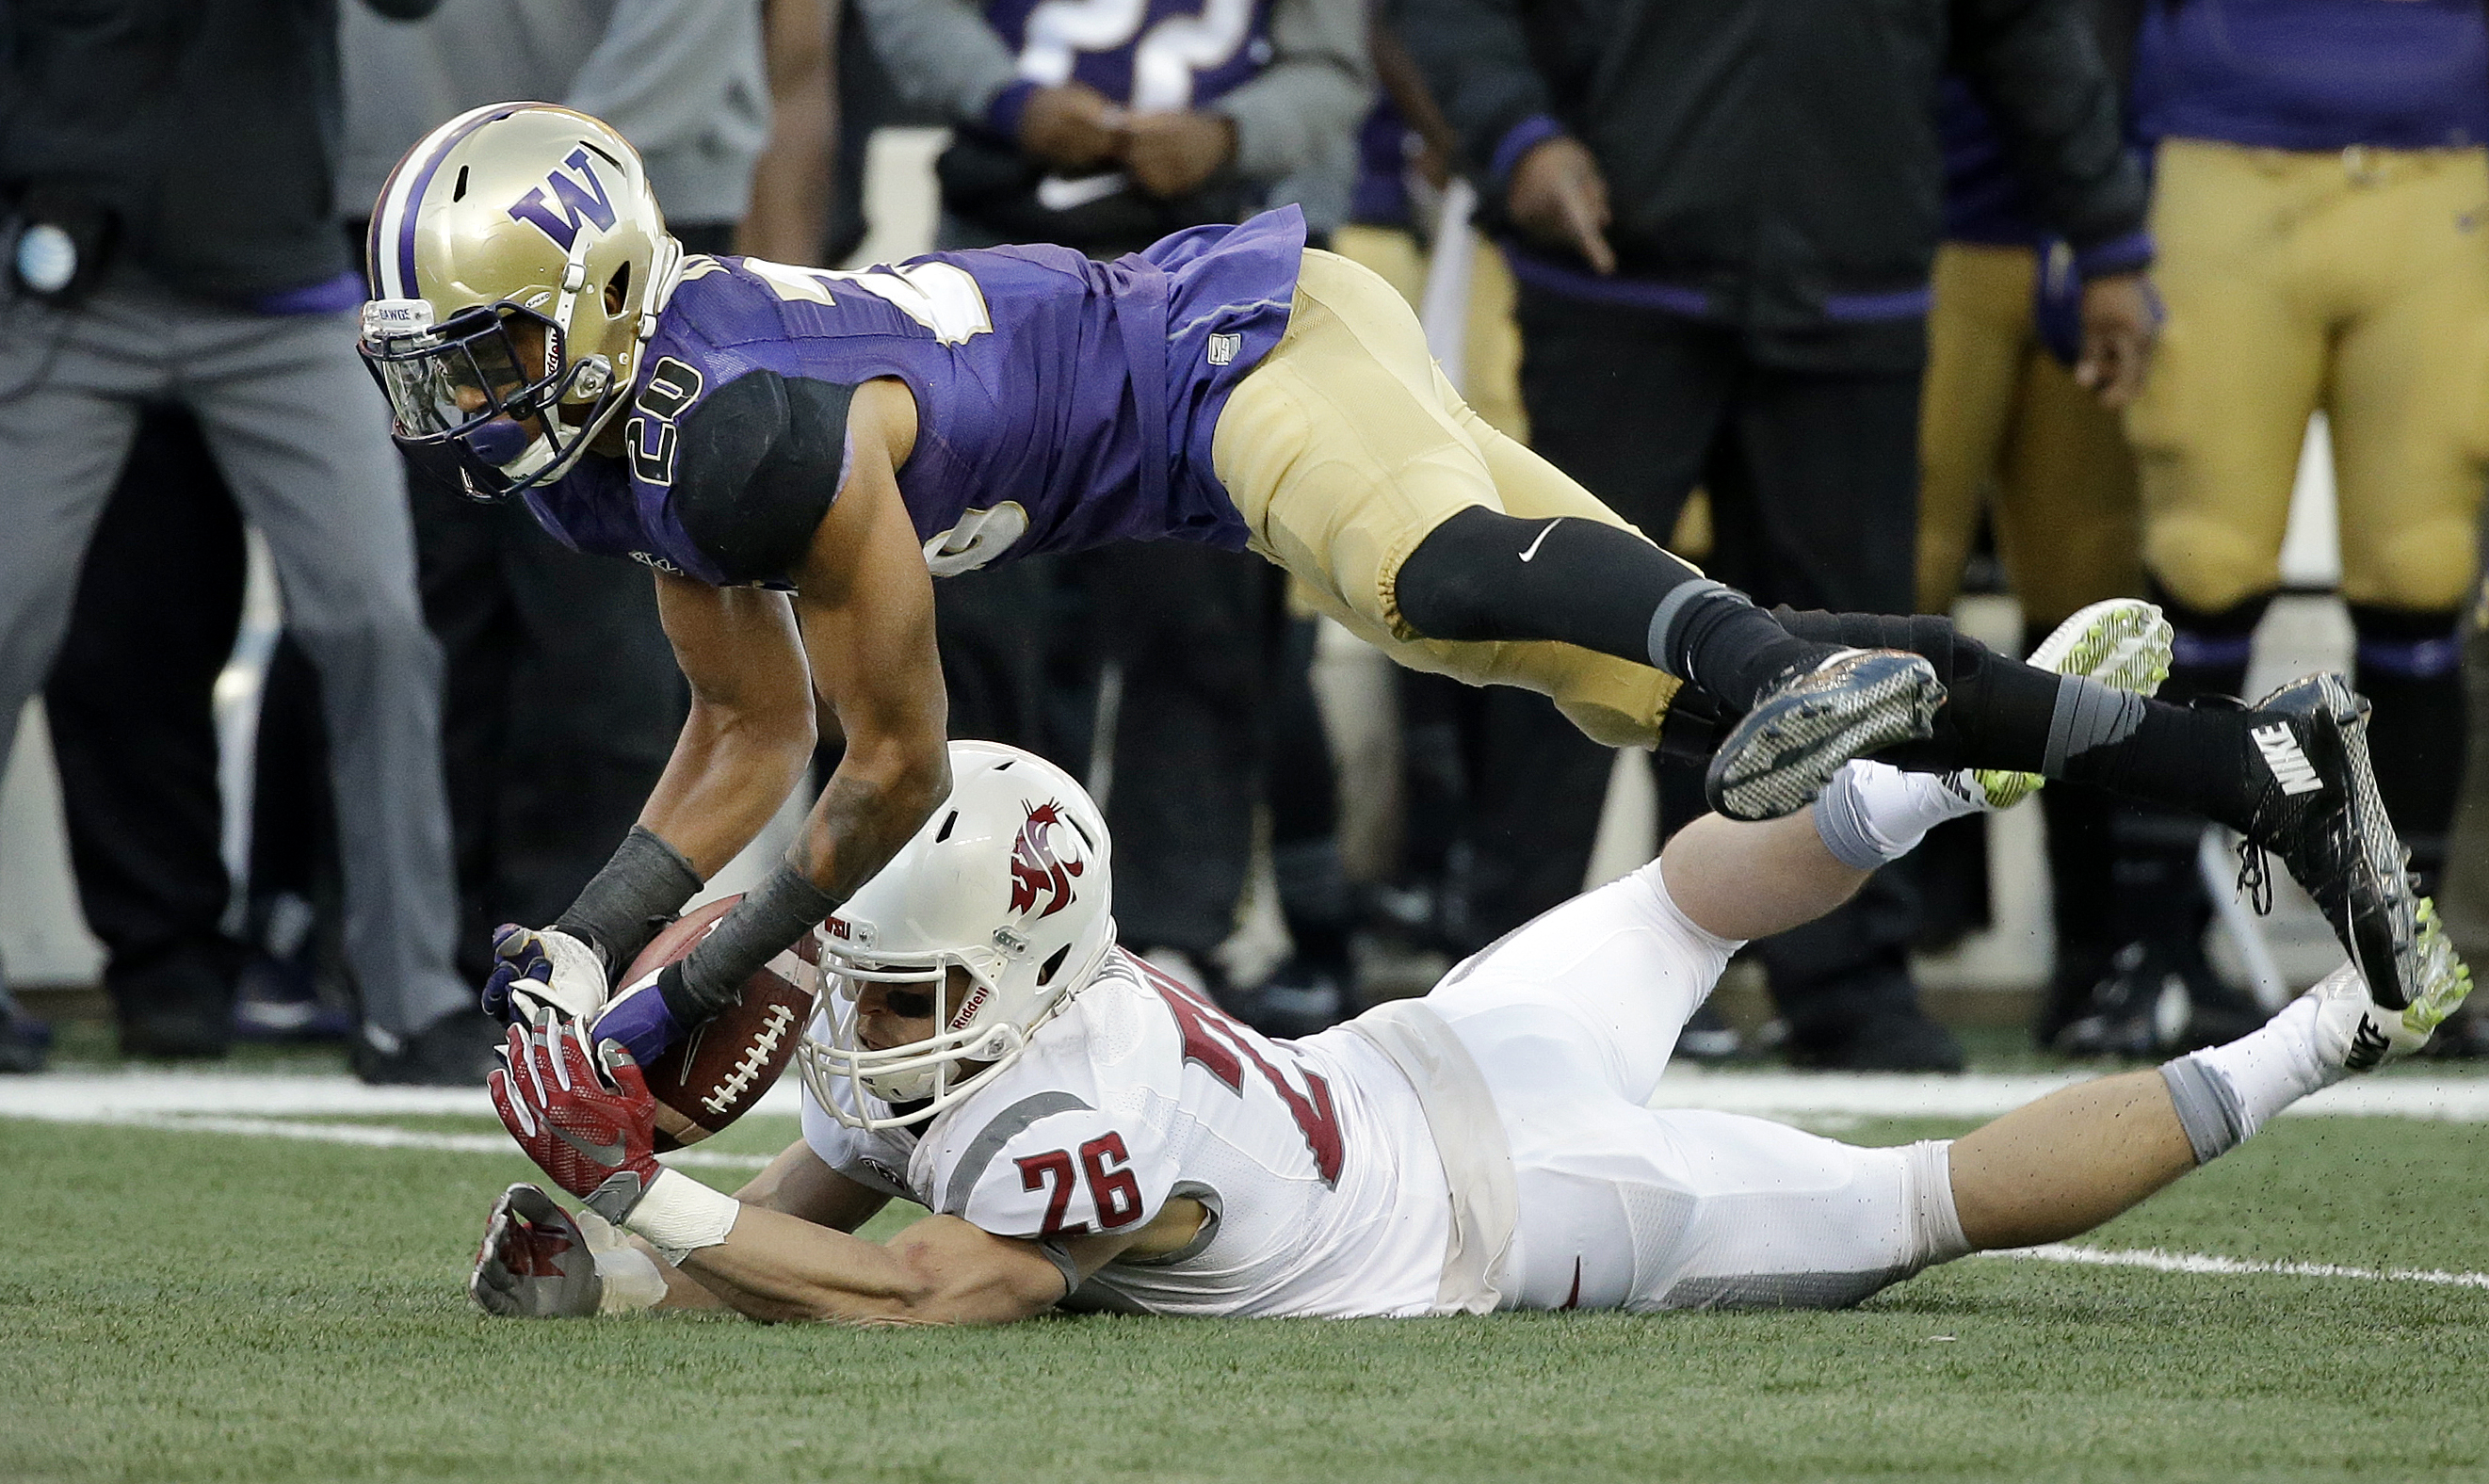 Washington defender Kevin King (20) knocks the ball away from Washington State's intended receiver, Tyler Baker, during the second half of an NCAA college football game Friday, Nov. 27, 2015, in Seattle. (AP Photo/Elaine Thompson)